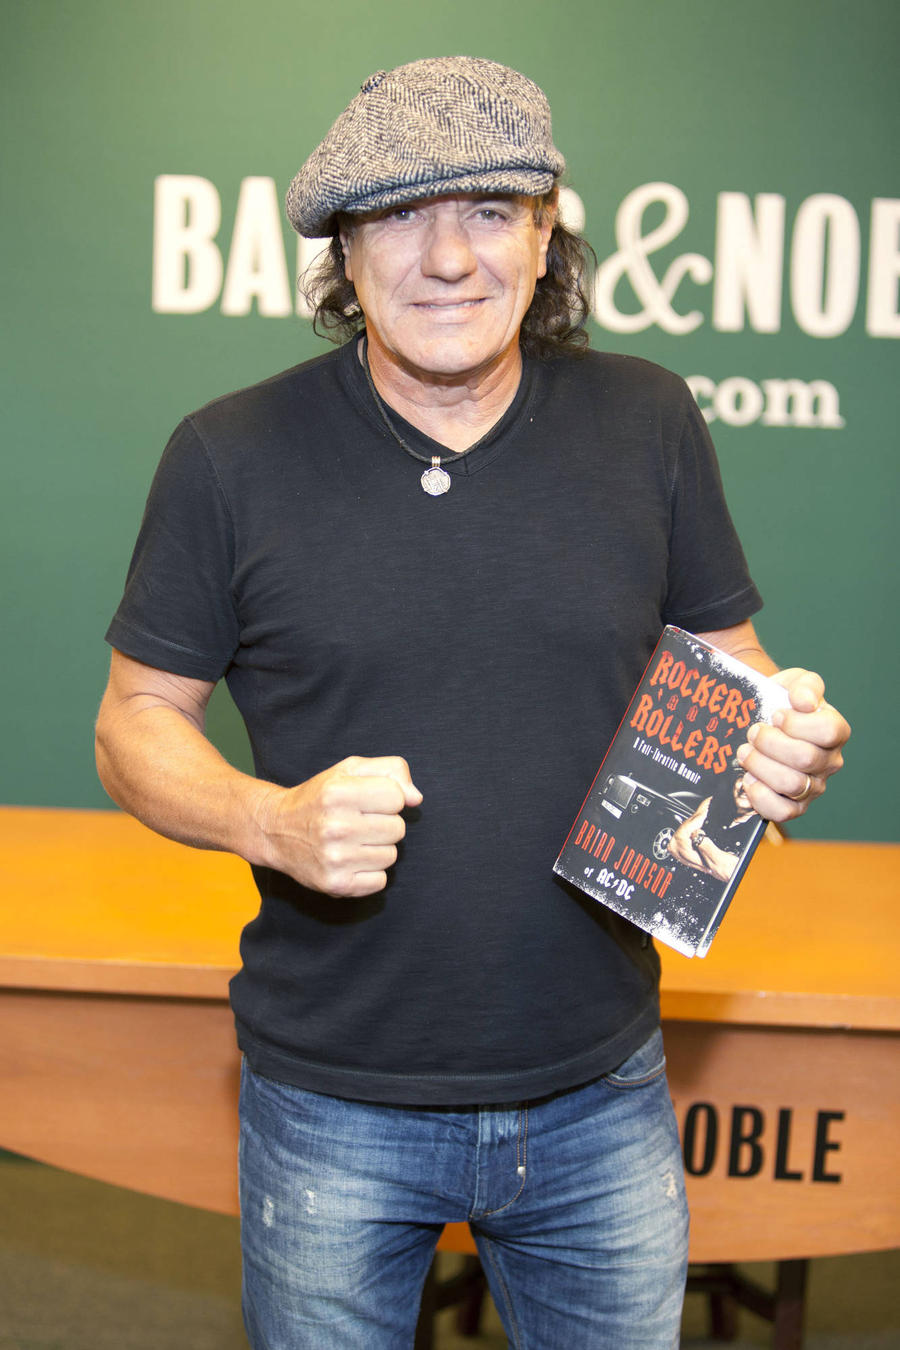 Brian Johnson 'Crushed' By Hearing Diagnosis